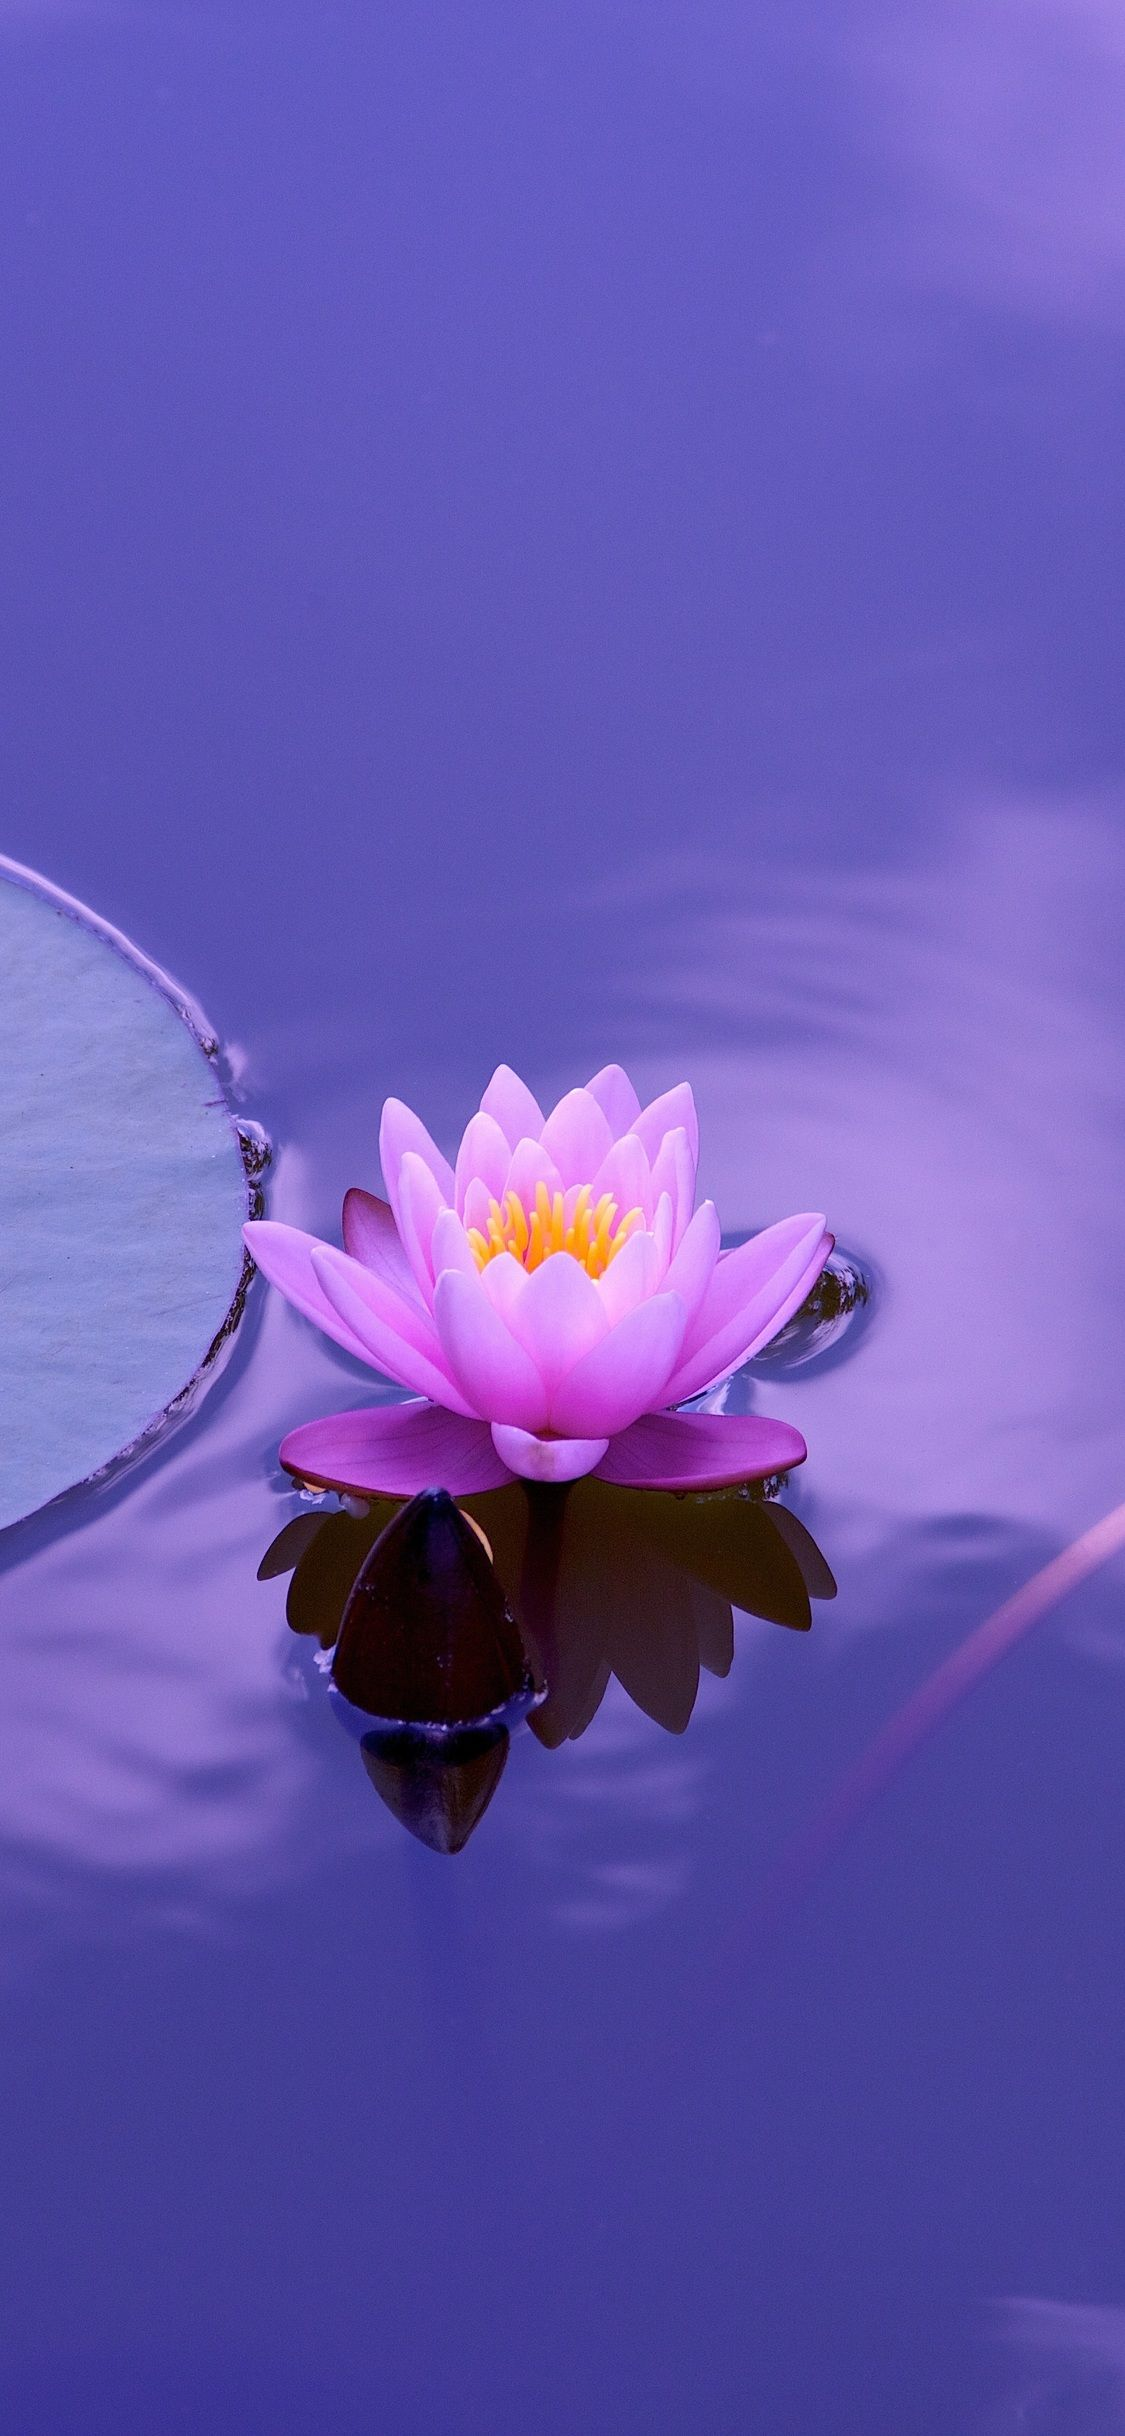 Iphone Lotus Wallpapers Top Free Iphone Lotus Backgrounds